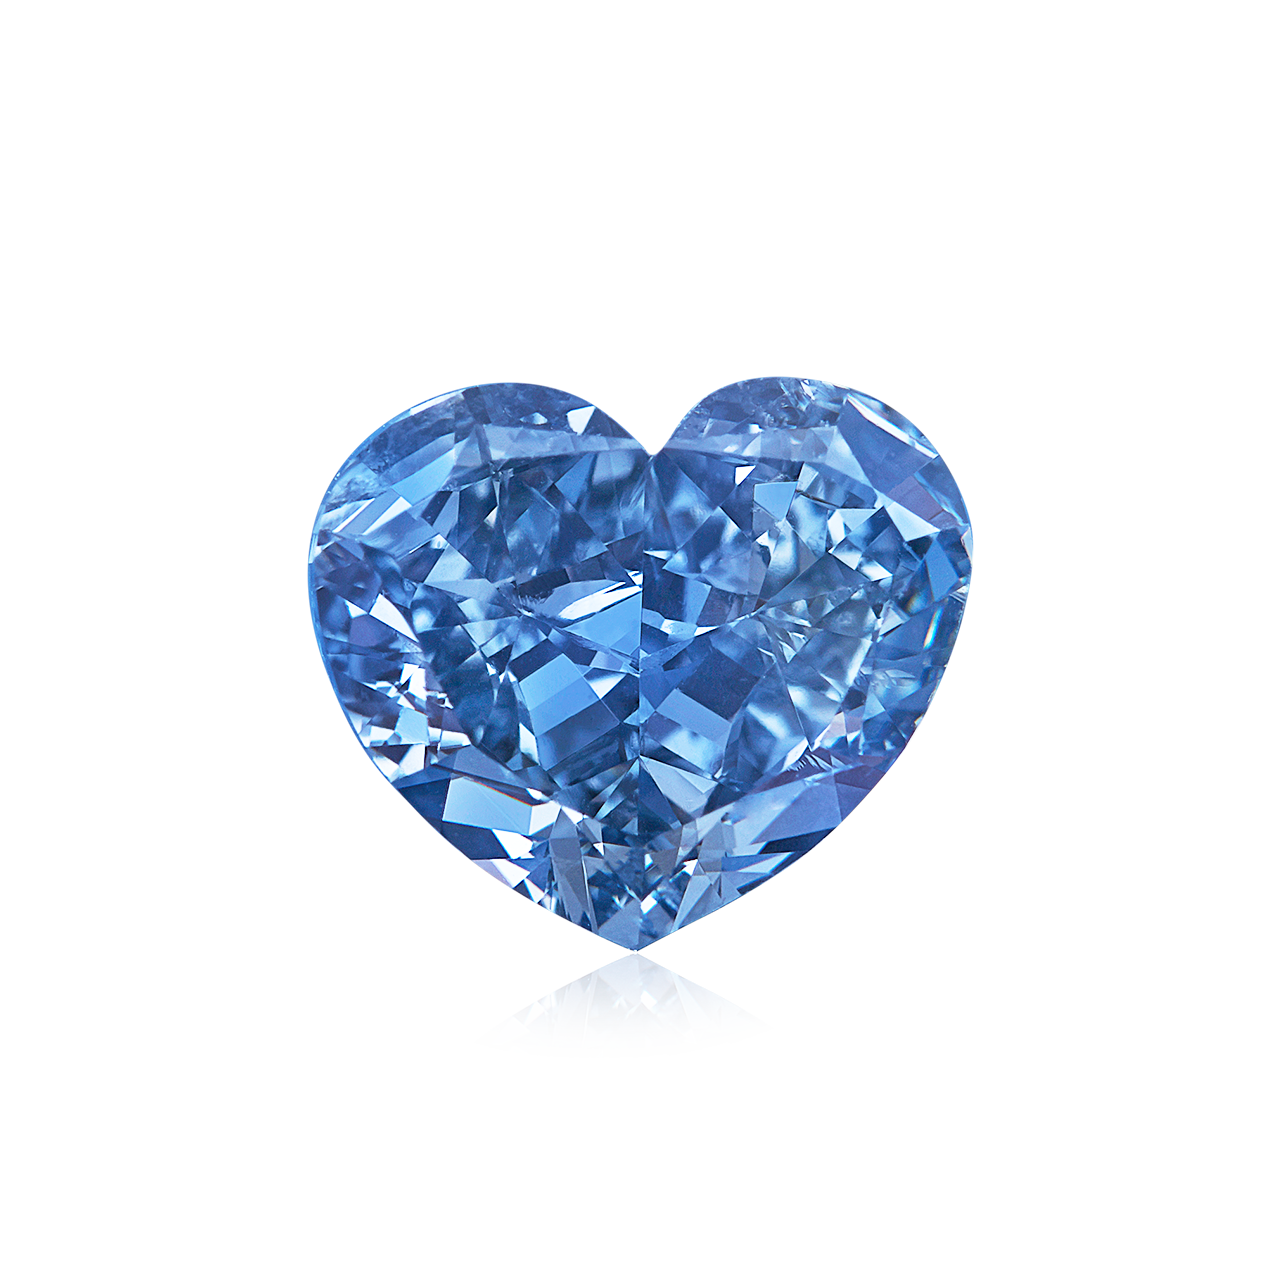 GIA 豔彩藍彩鑽裸石 1.72克拉